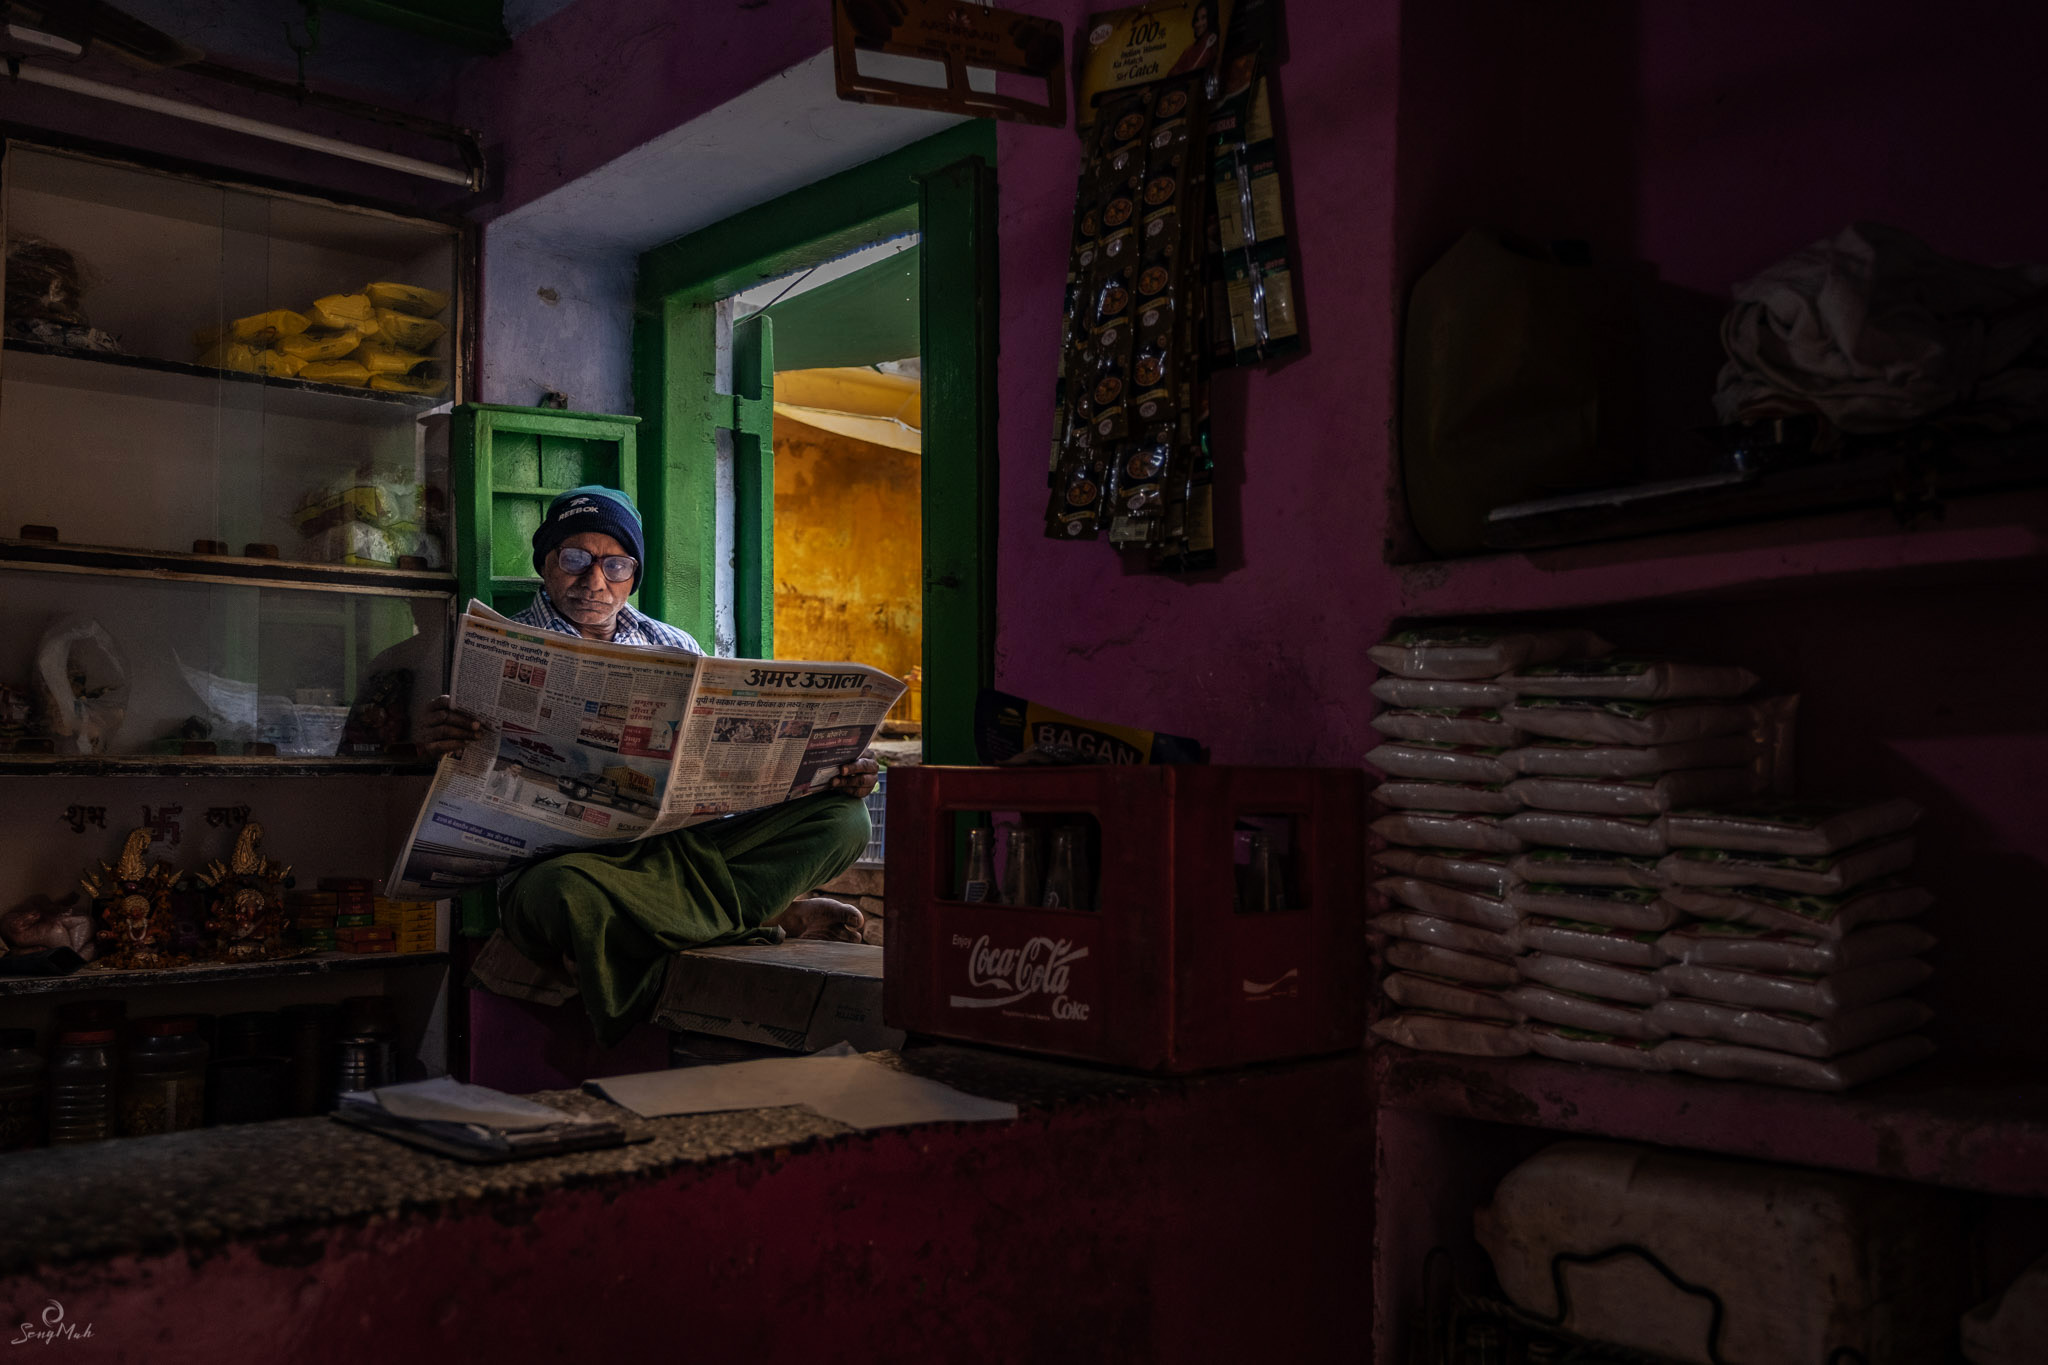 Interior scene of man reading newspaper in shop